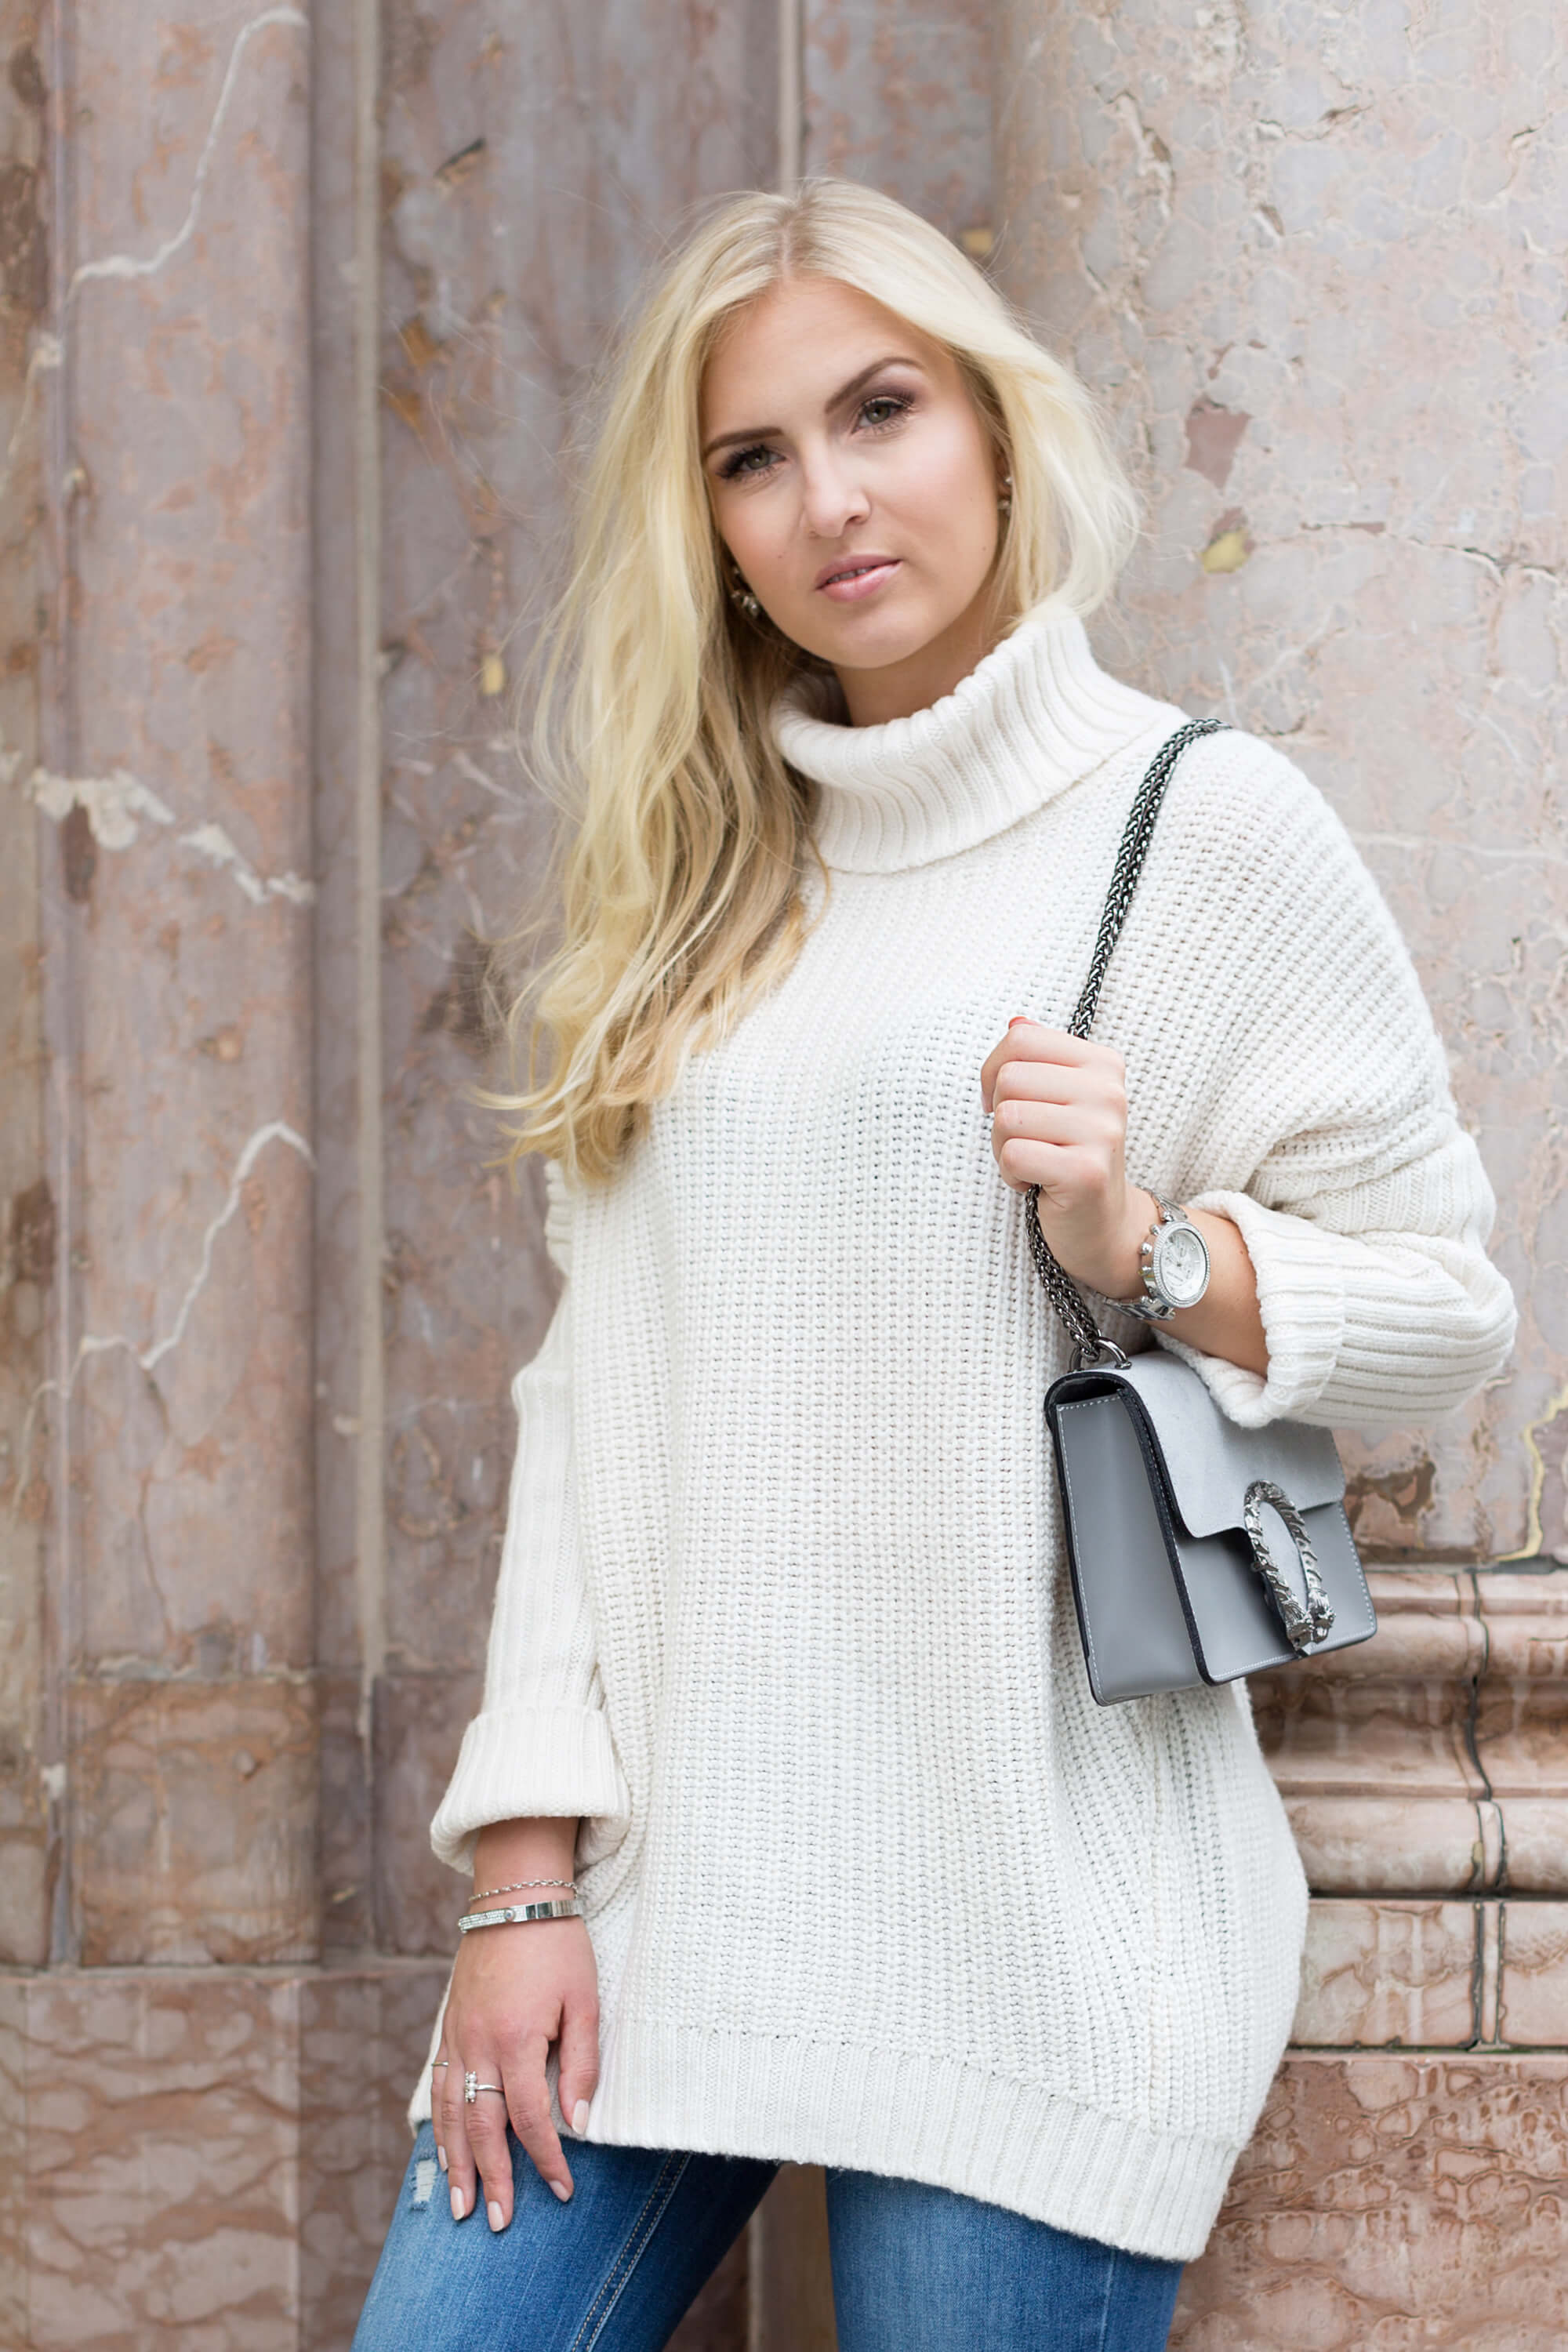 Strick Pullover Oversize Outfit Fashion Mode Blog Katefully